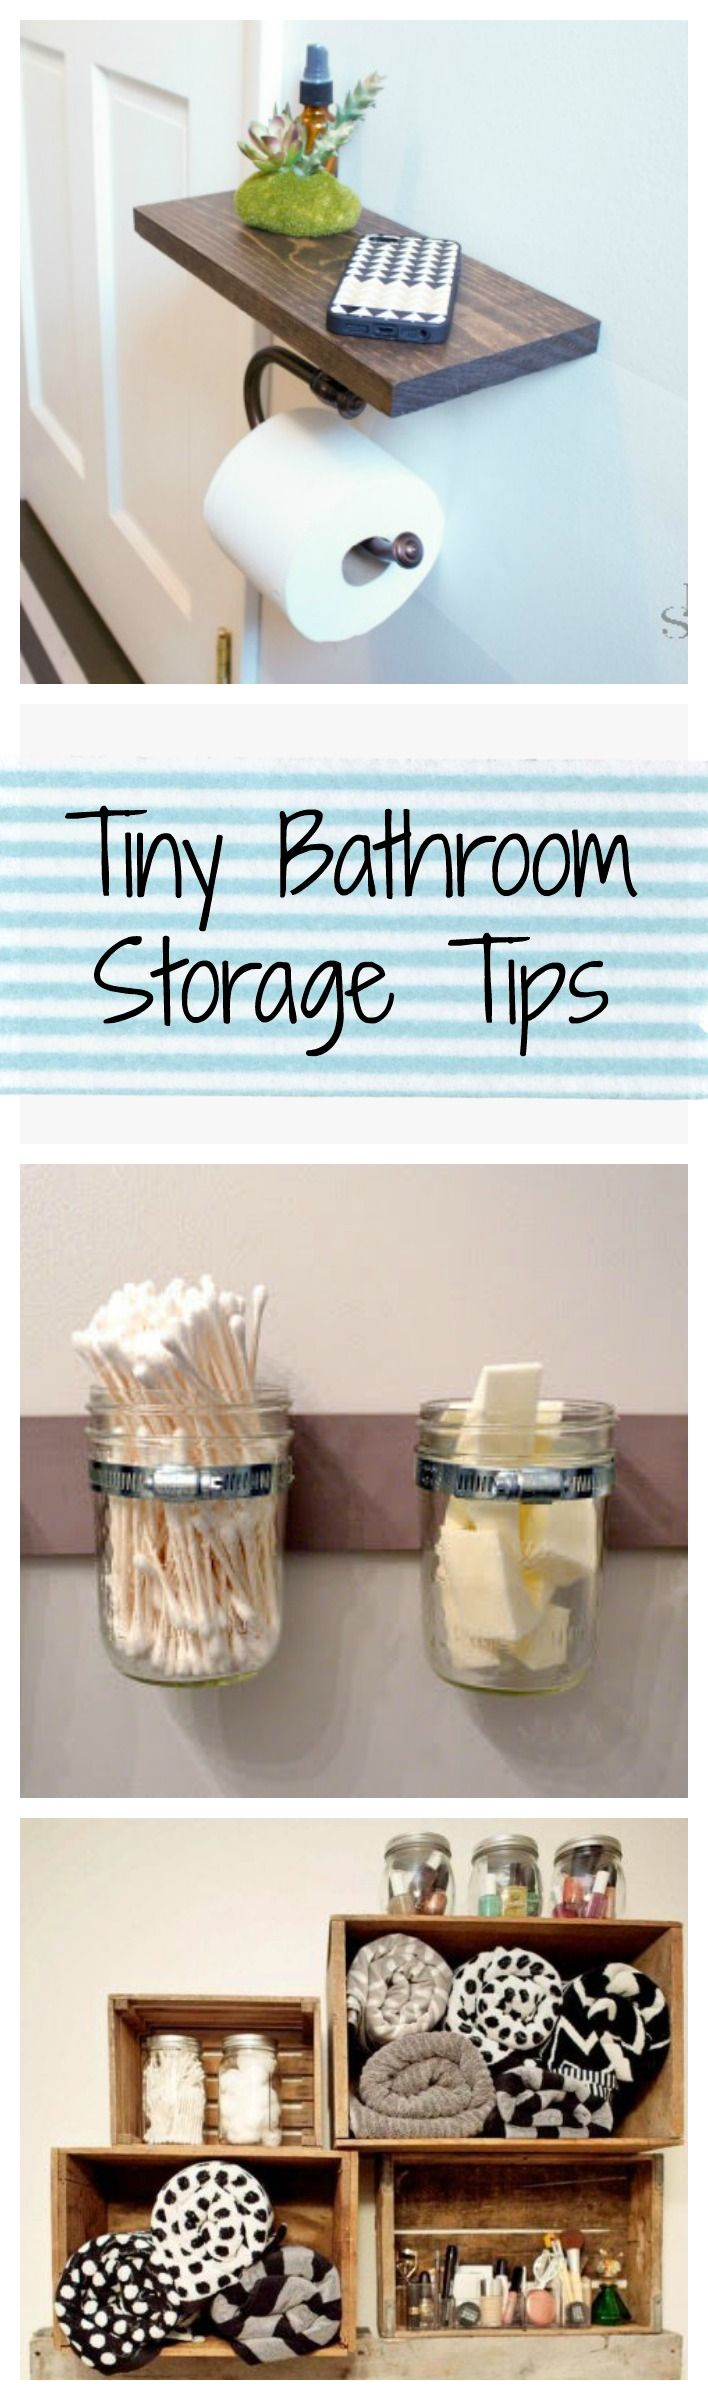 No space? No problem. Try these clever and easy storage tips to make the most of a tiny bathroom.